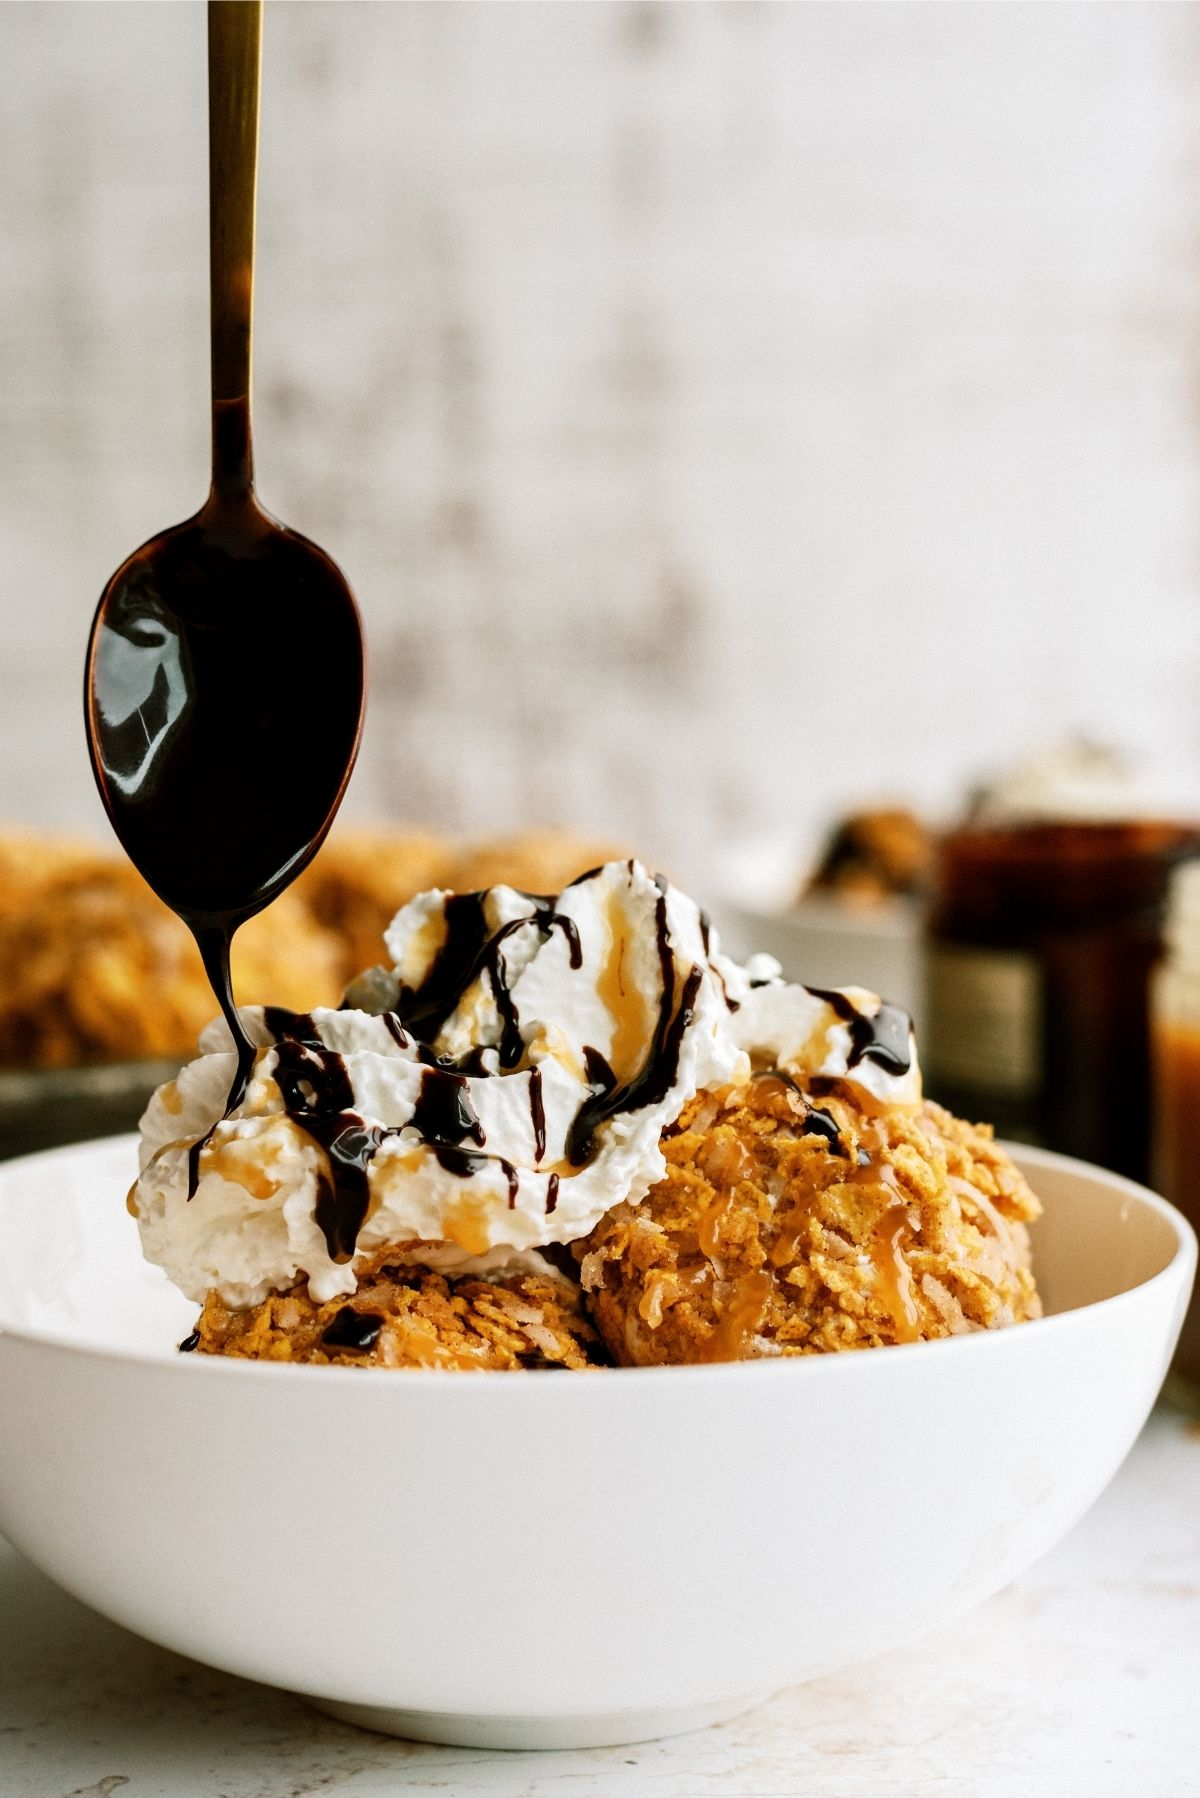 Toppings on Fried Ice Cream in white bowl